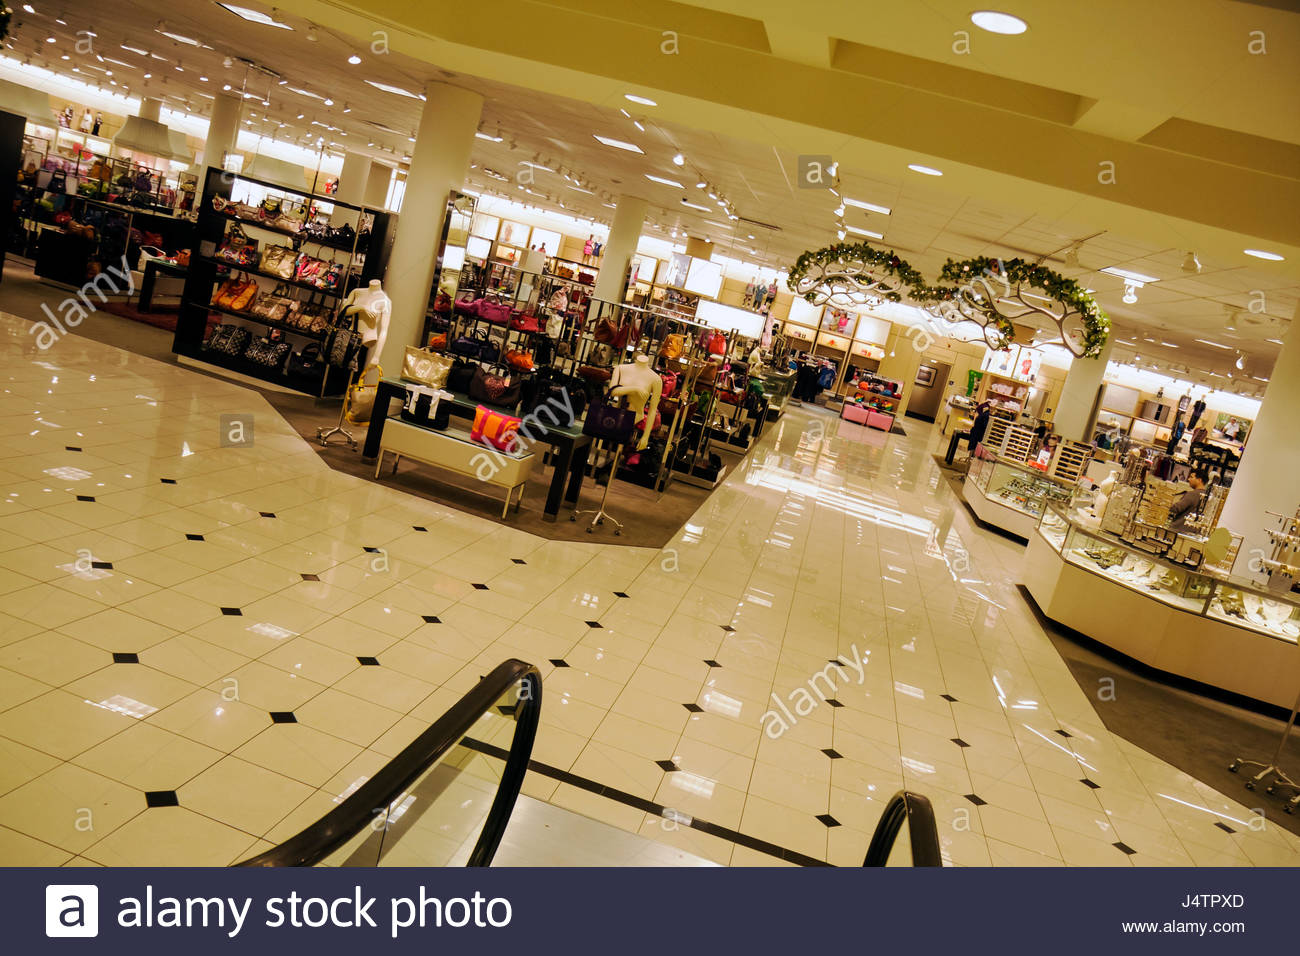 Palm Beach Florida Gardens The Gardens Mall Nordstrom department ...